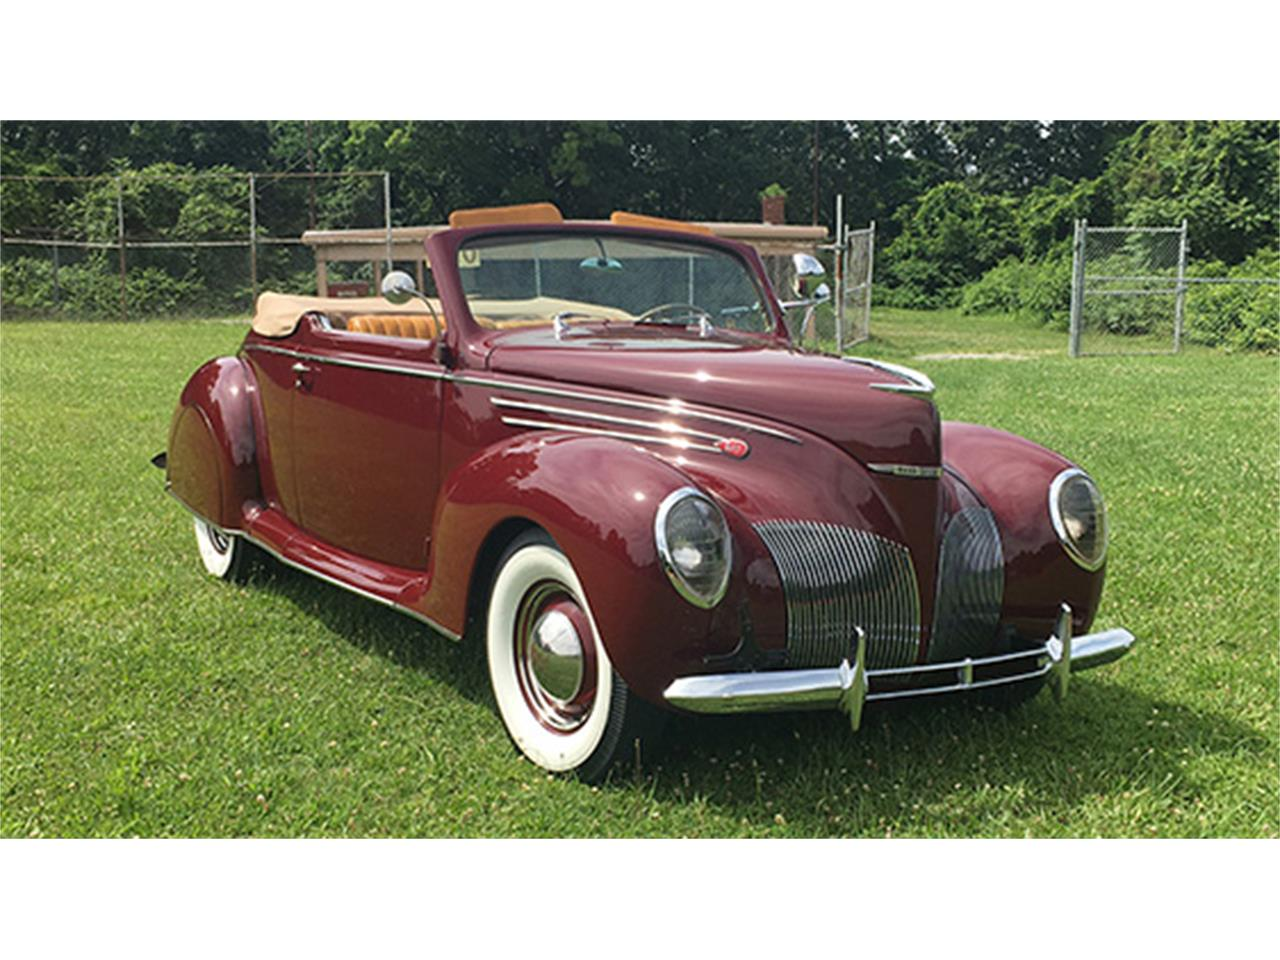 1939 Lincoln Zephyr V 12 Convertible Coupe For Sale Classiccars